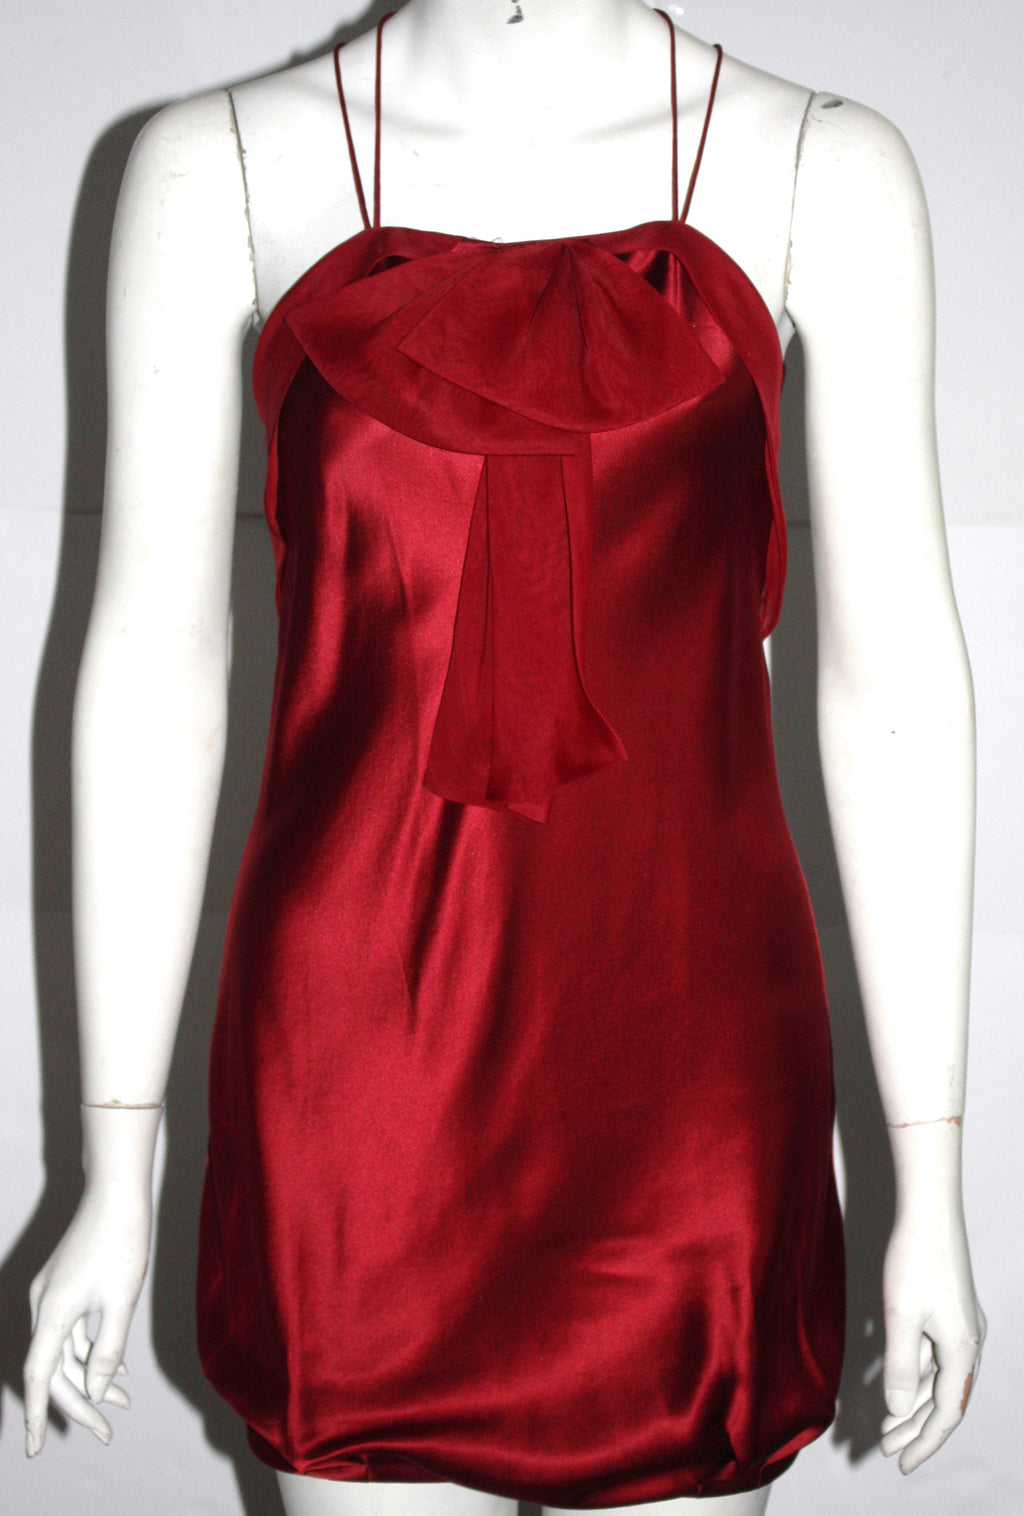 Bebe Red Halter Mini Silk Dress - Joyce's Closet  - 1